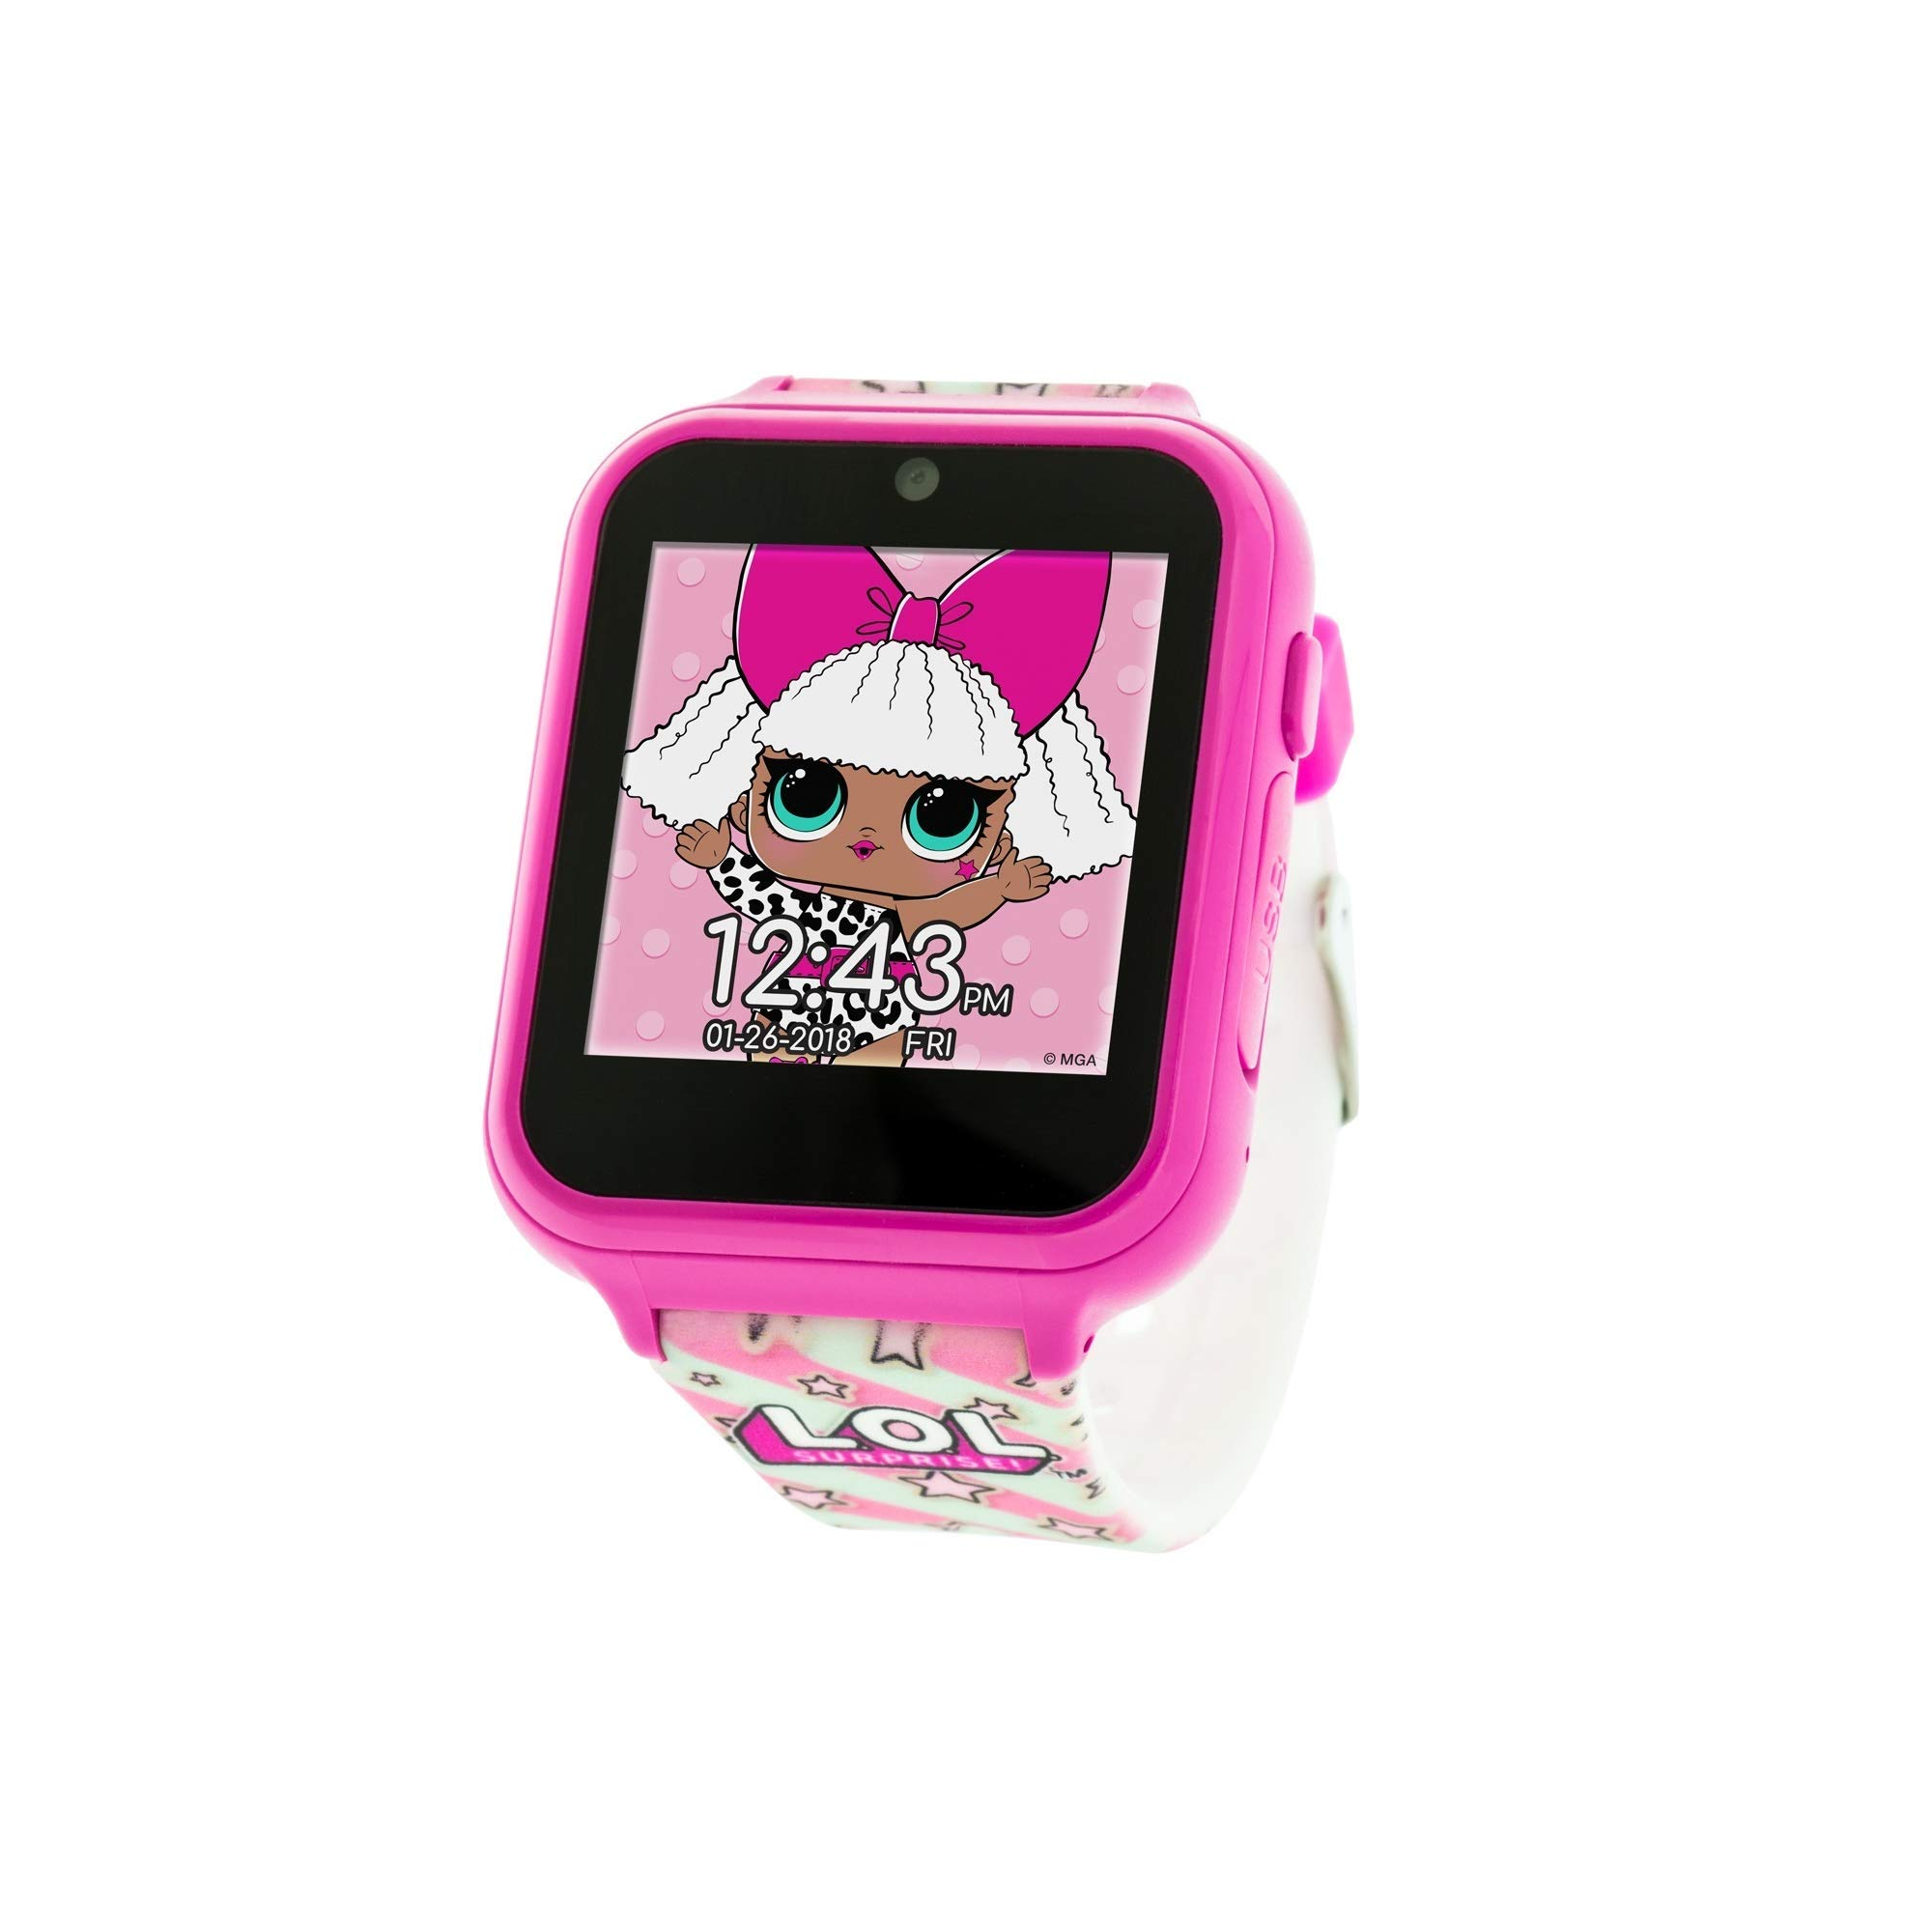 L.O.L. Surprise! Touch-Screen Smartwatch, Built in Selfie-Camera, Easy-to-Buckle Strap, Pink Smart Watch - Model: LOL4104 by L.O.L. Surprise!